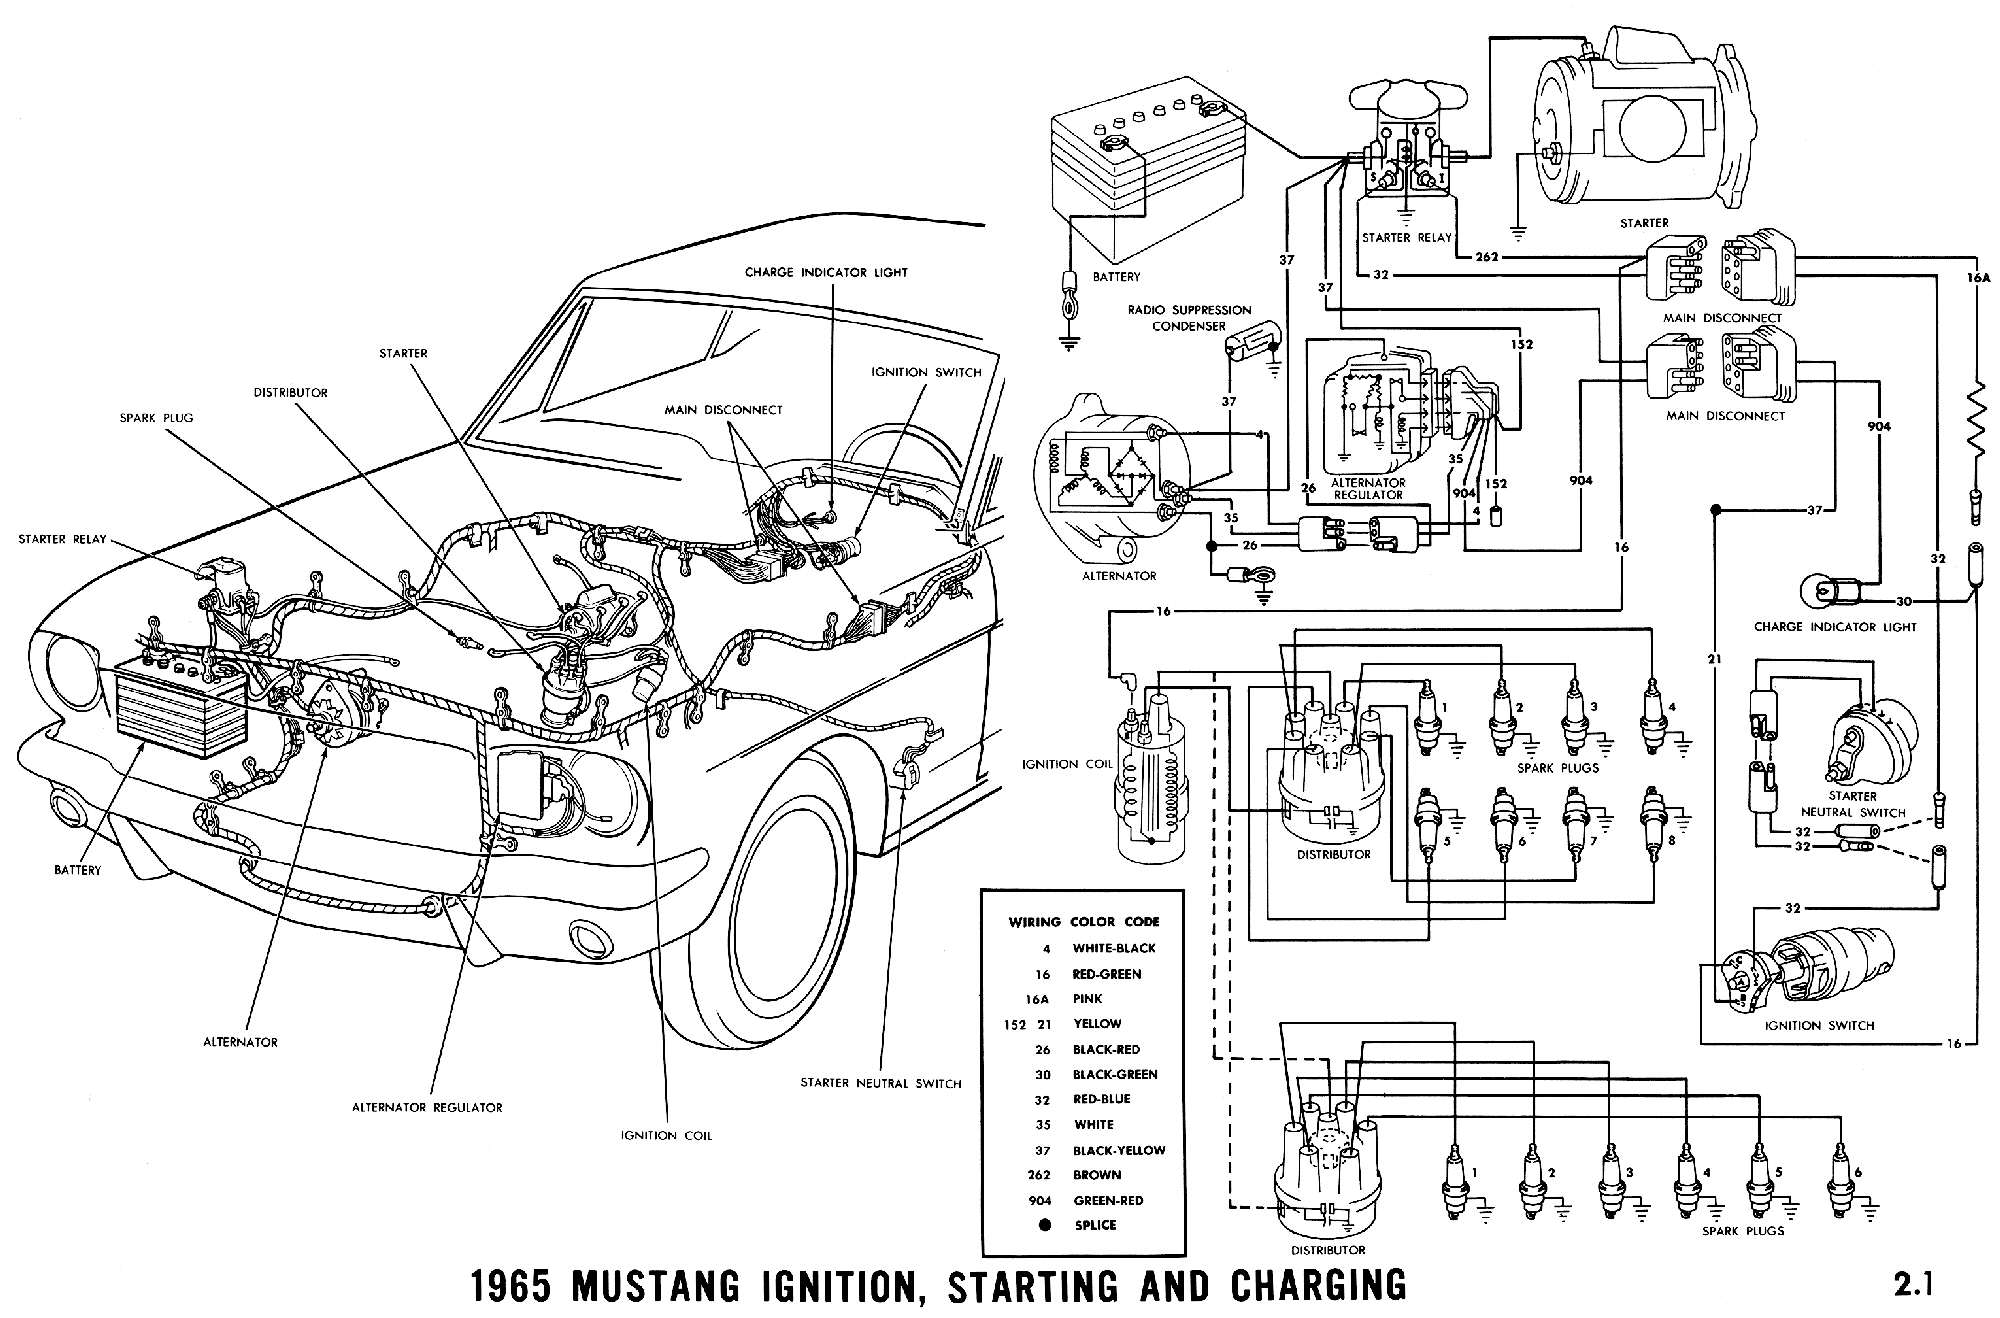 1965c 1965 mustang wiring diagrams average joe restoration  at creativeand.co